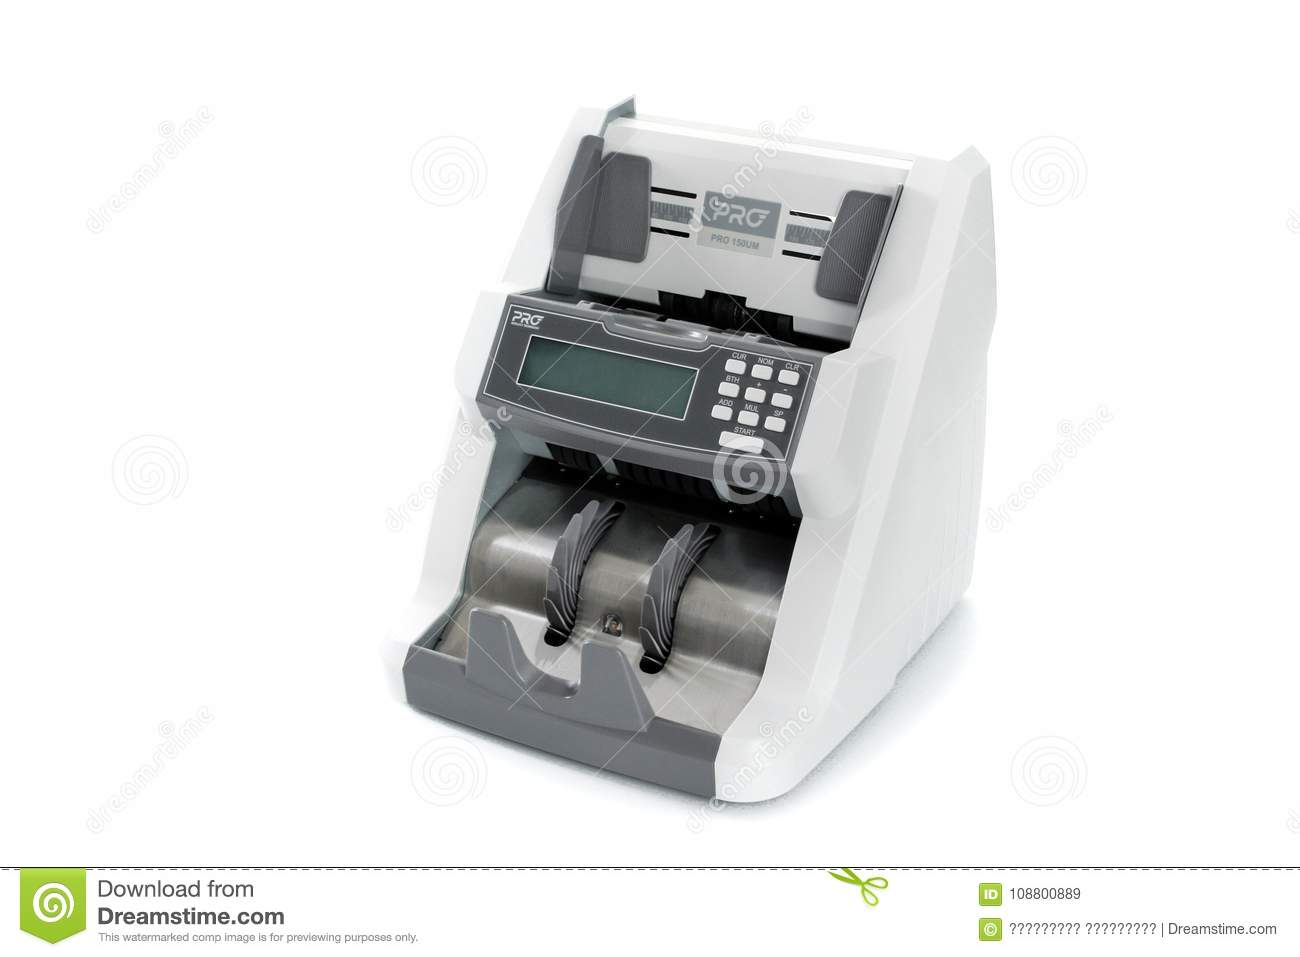 GOMEL, BELARUS - March 27, 2013: The counter of the banknotes of the firm GTS on the white background.